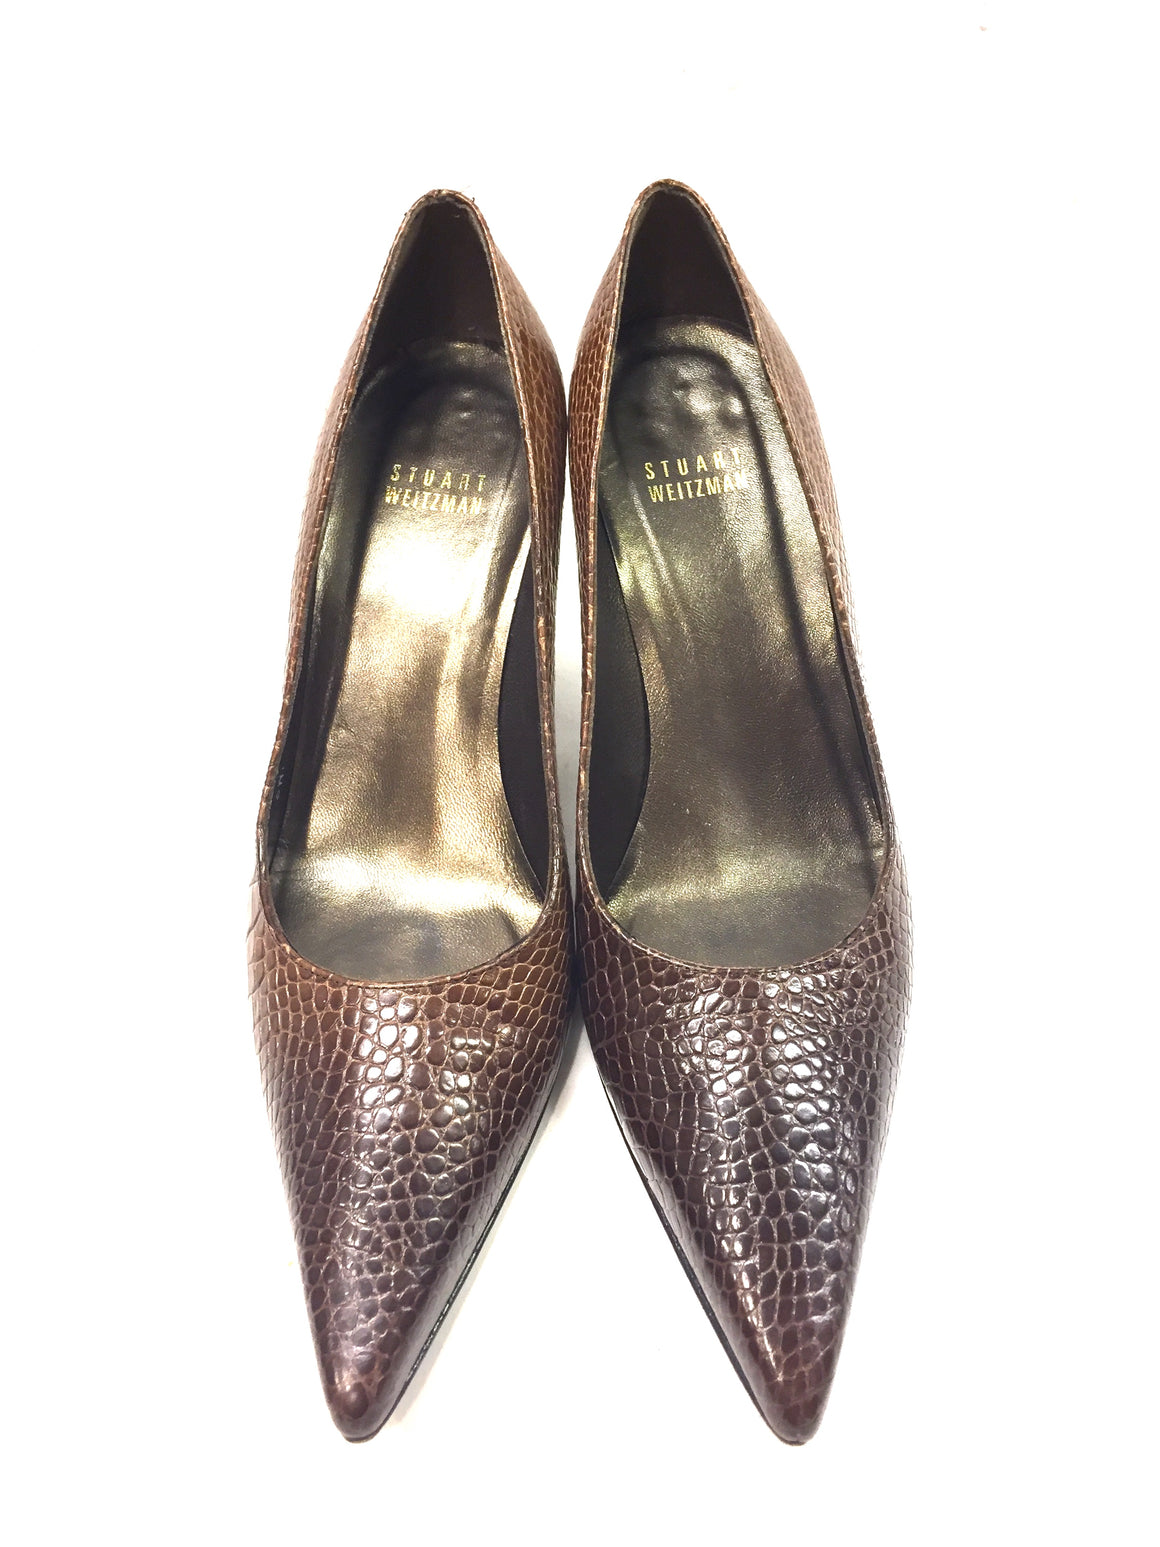 STUART WEITZMAN Tan/Brown Ombre Moc-Croc Leather Heel Pumps Sz 7M